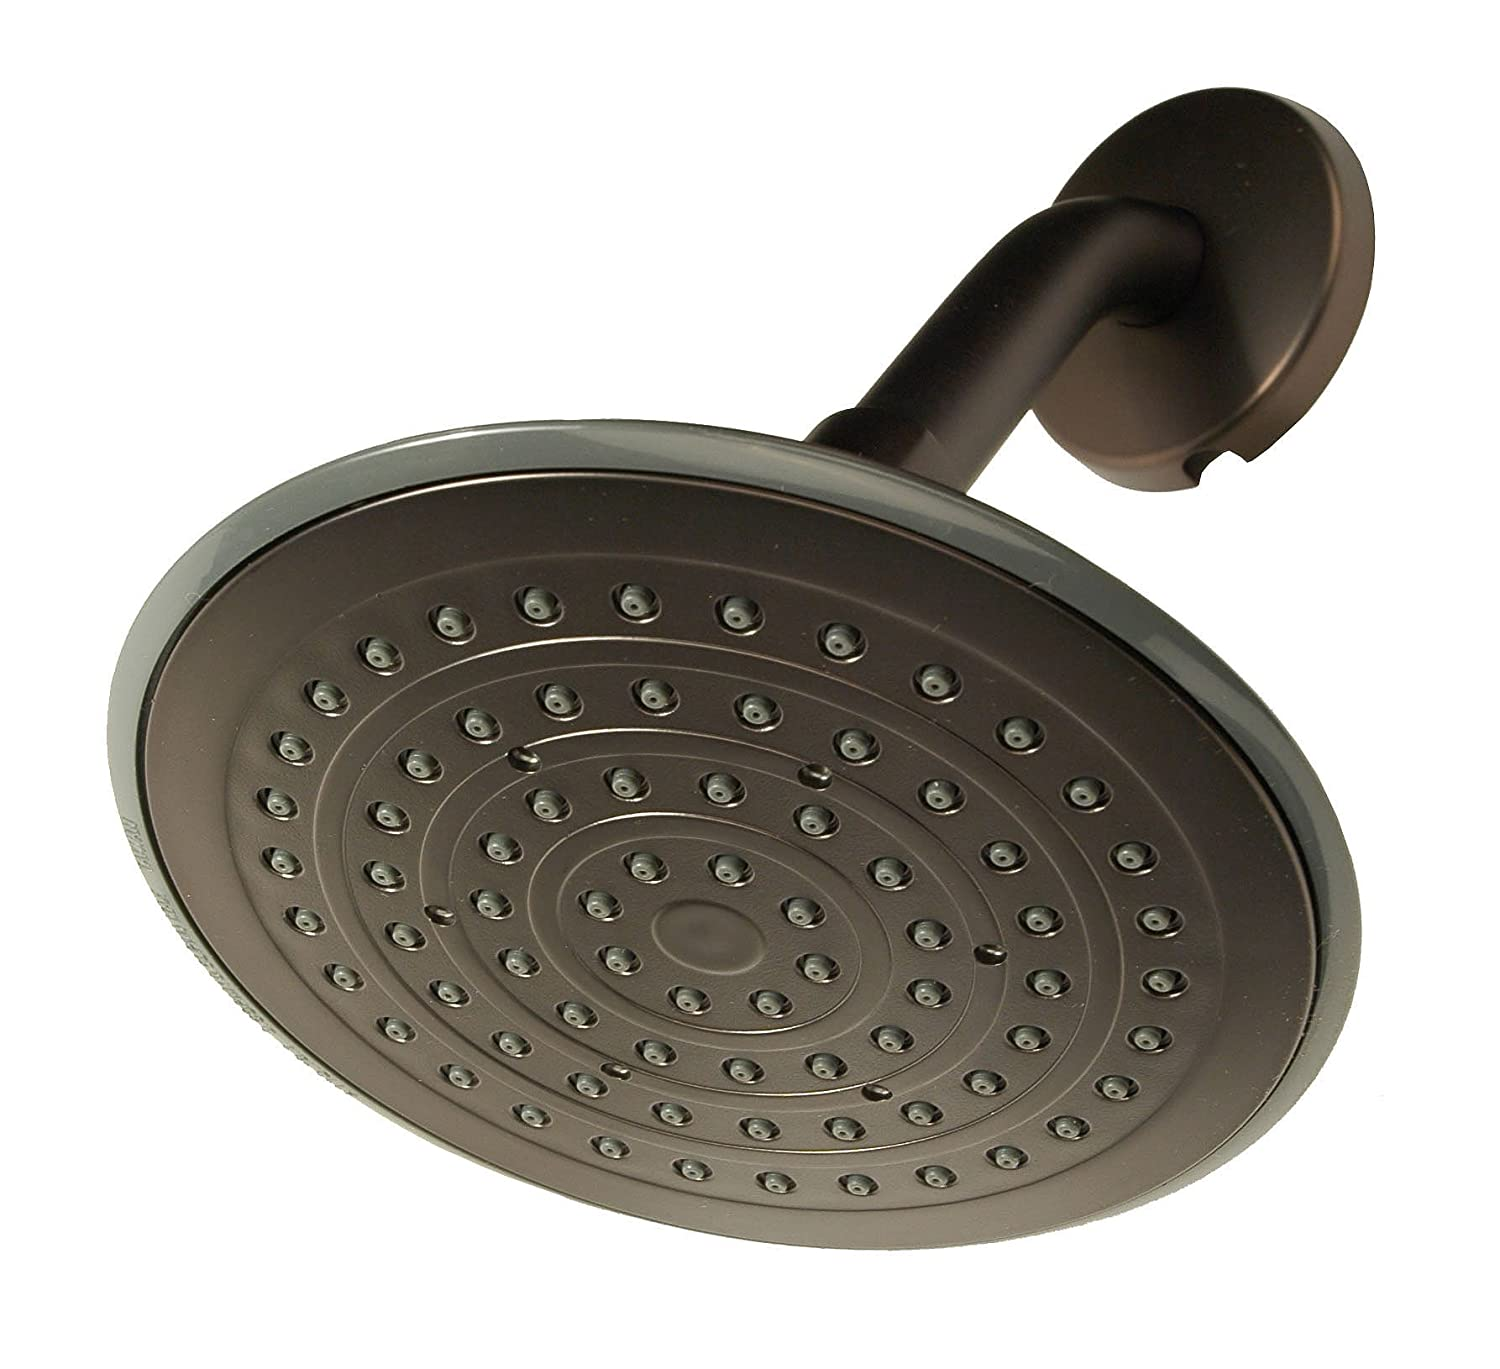 high-quality Shower Arm and Head, Oil Rubbed Bronze Finish - By Plumb USA